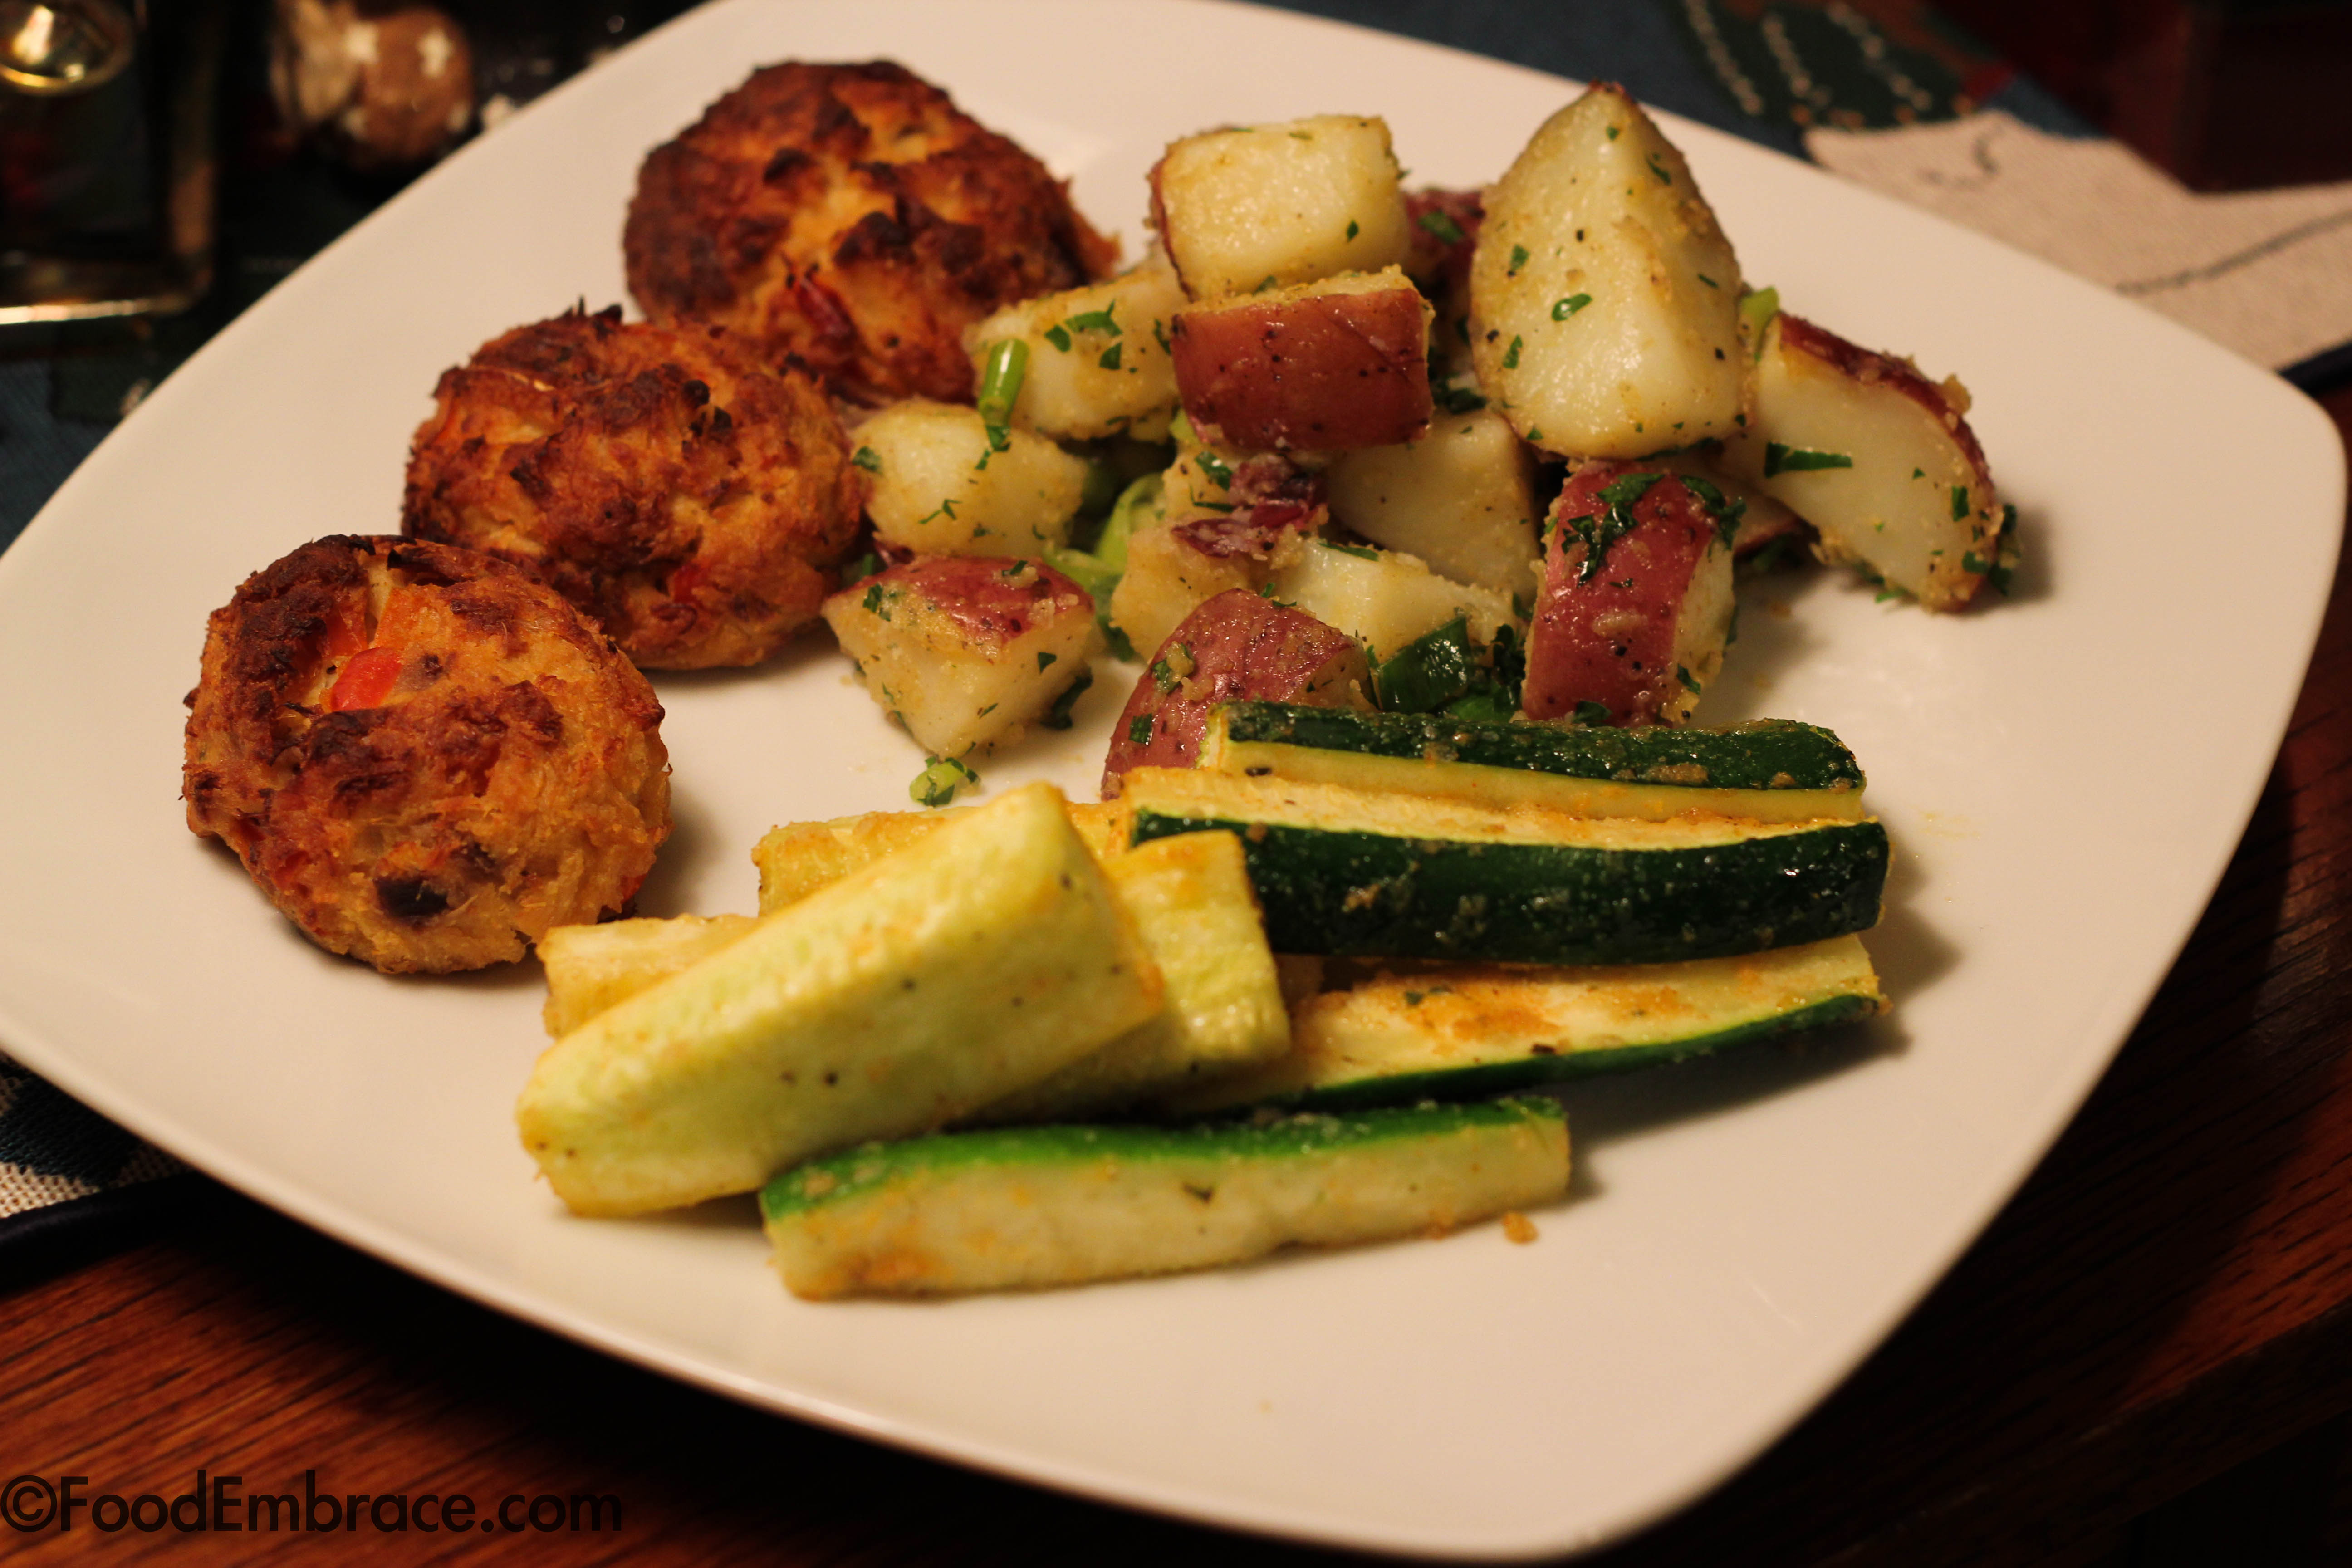 Crab cakes, potatoes, squash